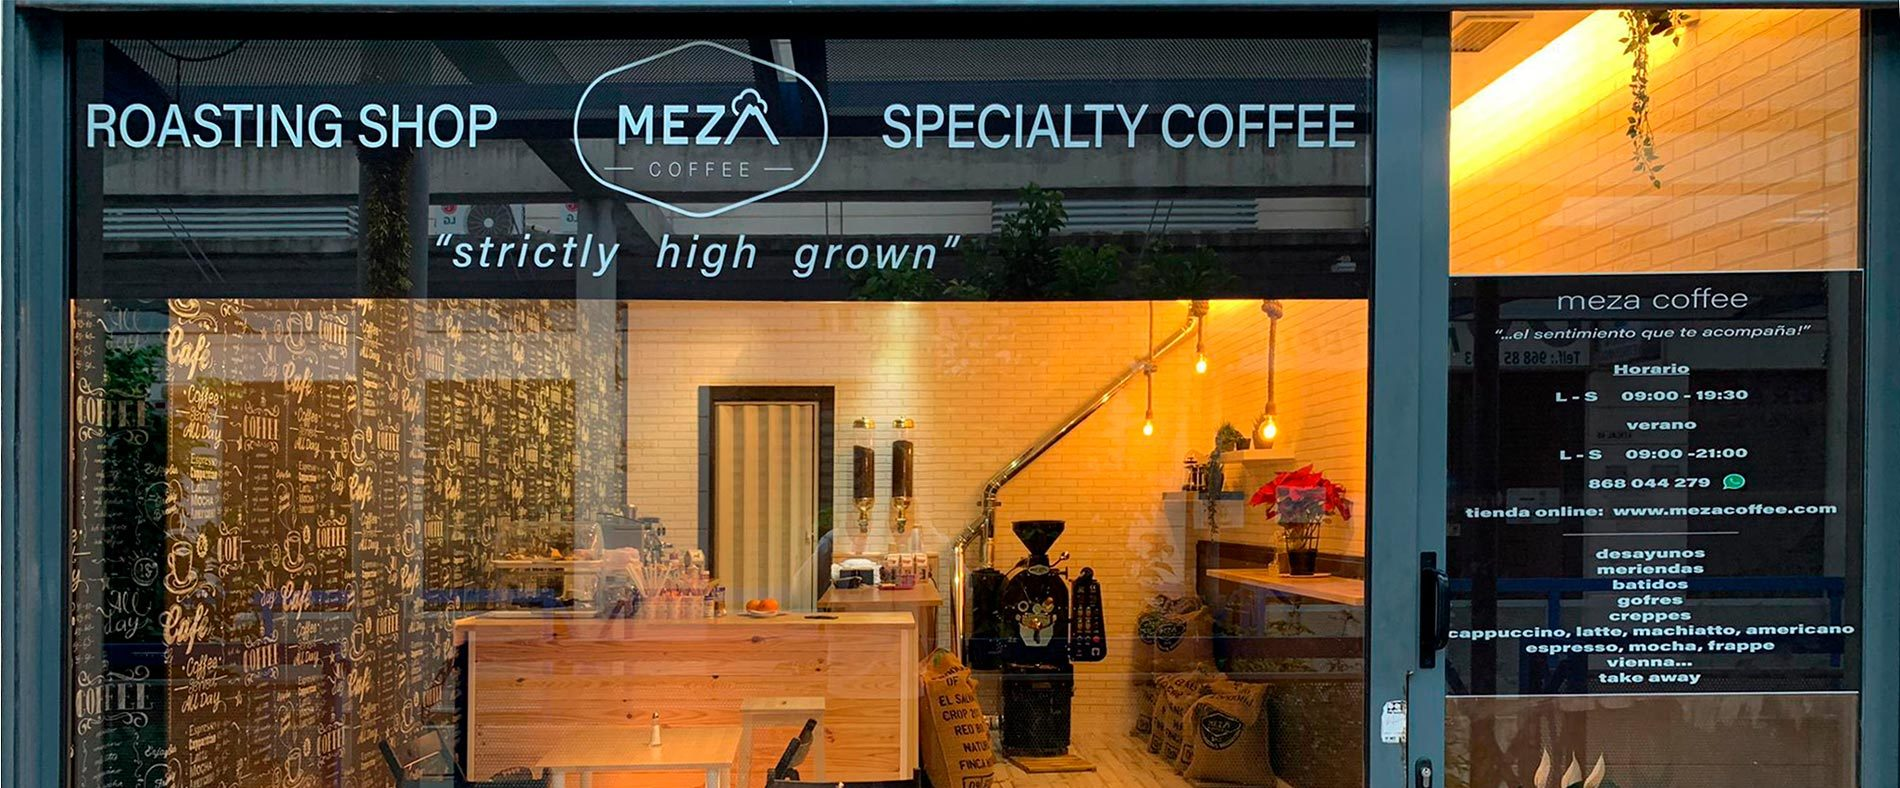 Meza Coffee Roaster Shop